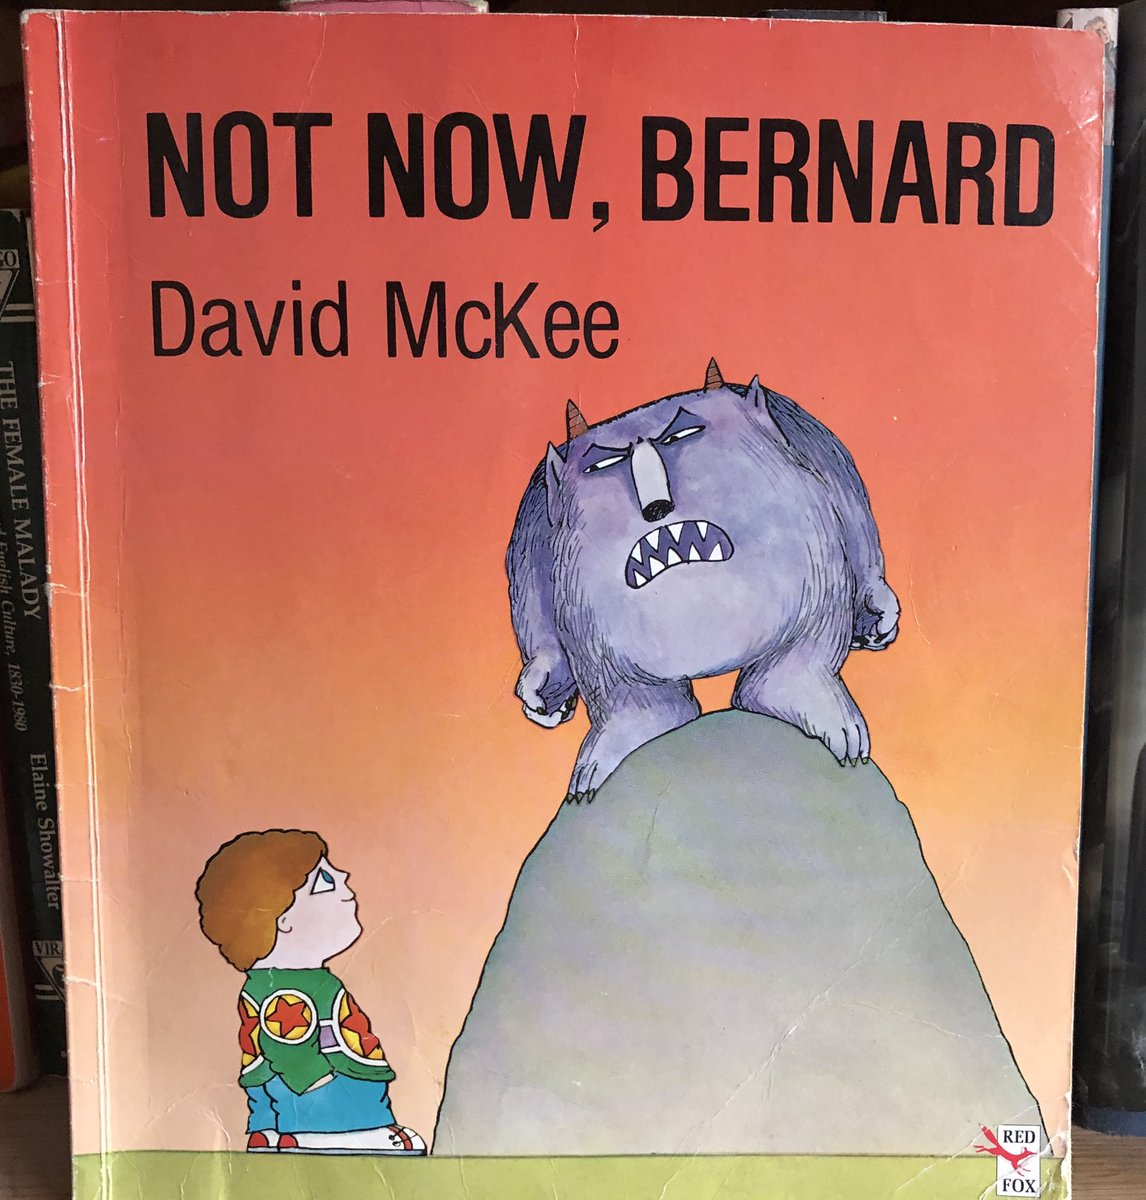 Day 5/7 of #BookRecommendations nominated by @MinxyOwl is Not Now Bernard by David McKee.